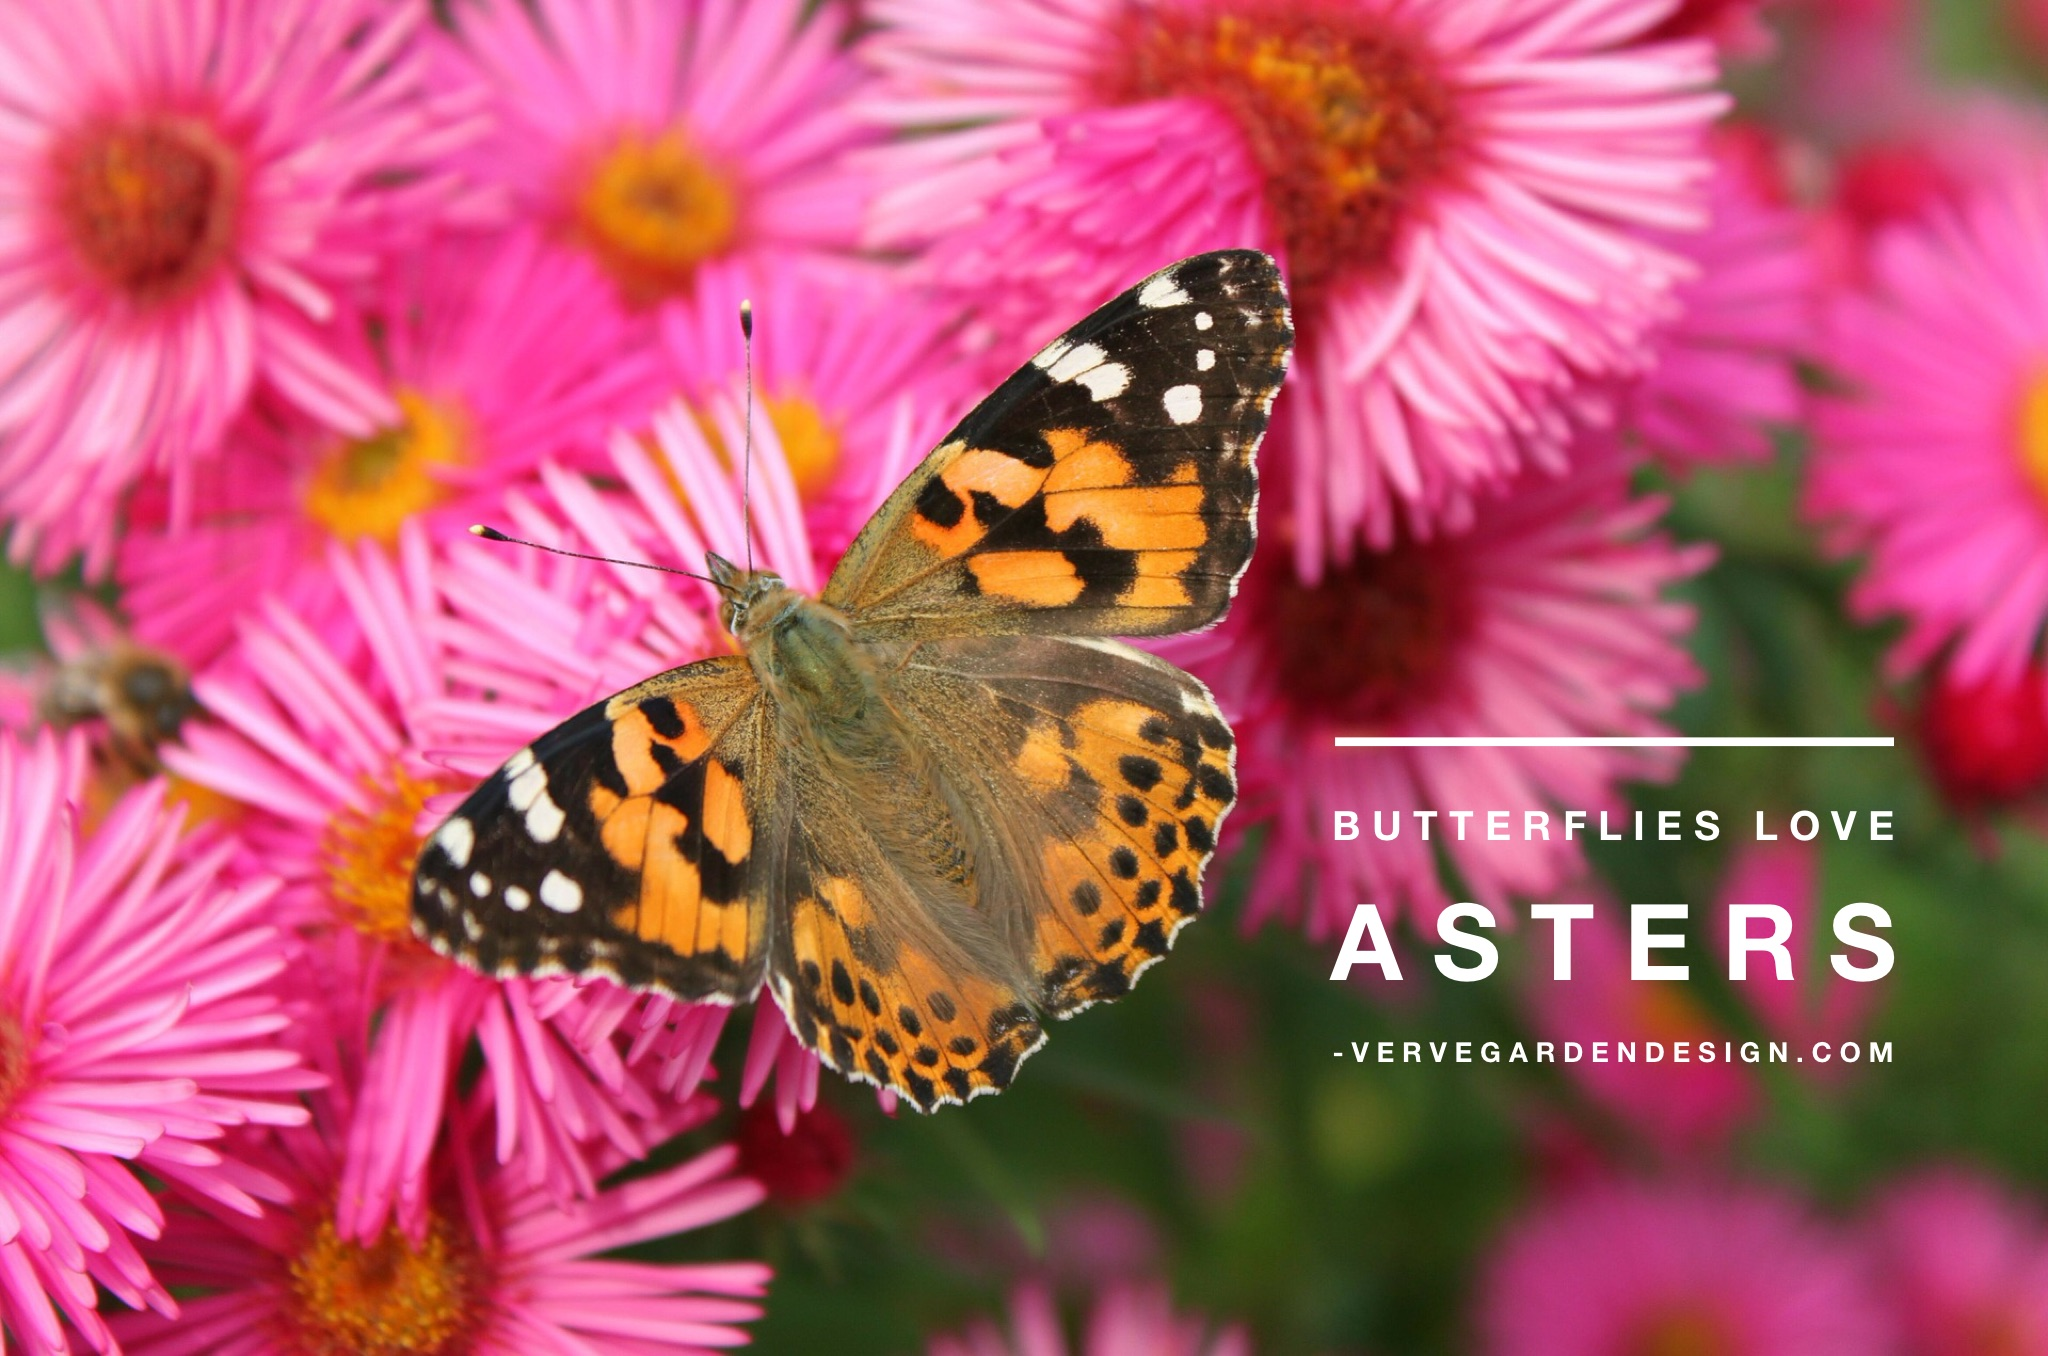 """Early flowering Asters like Aster x frikartii 'Monch""""will have you all a flutter"""